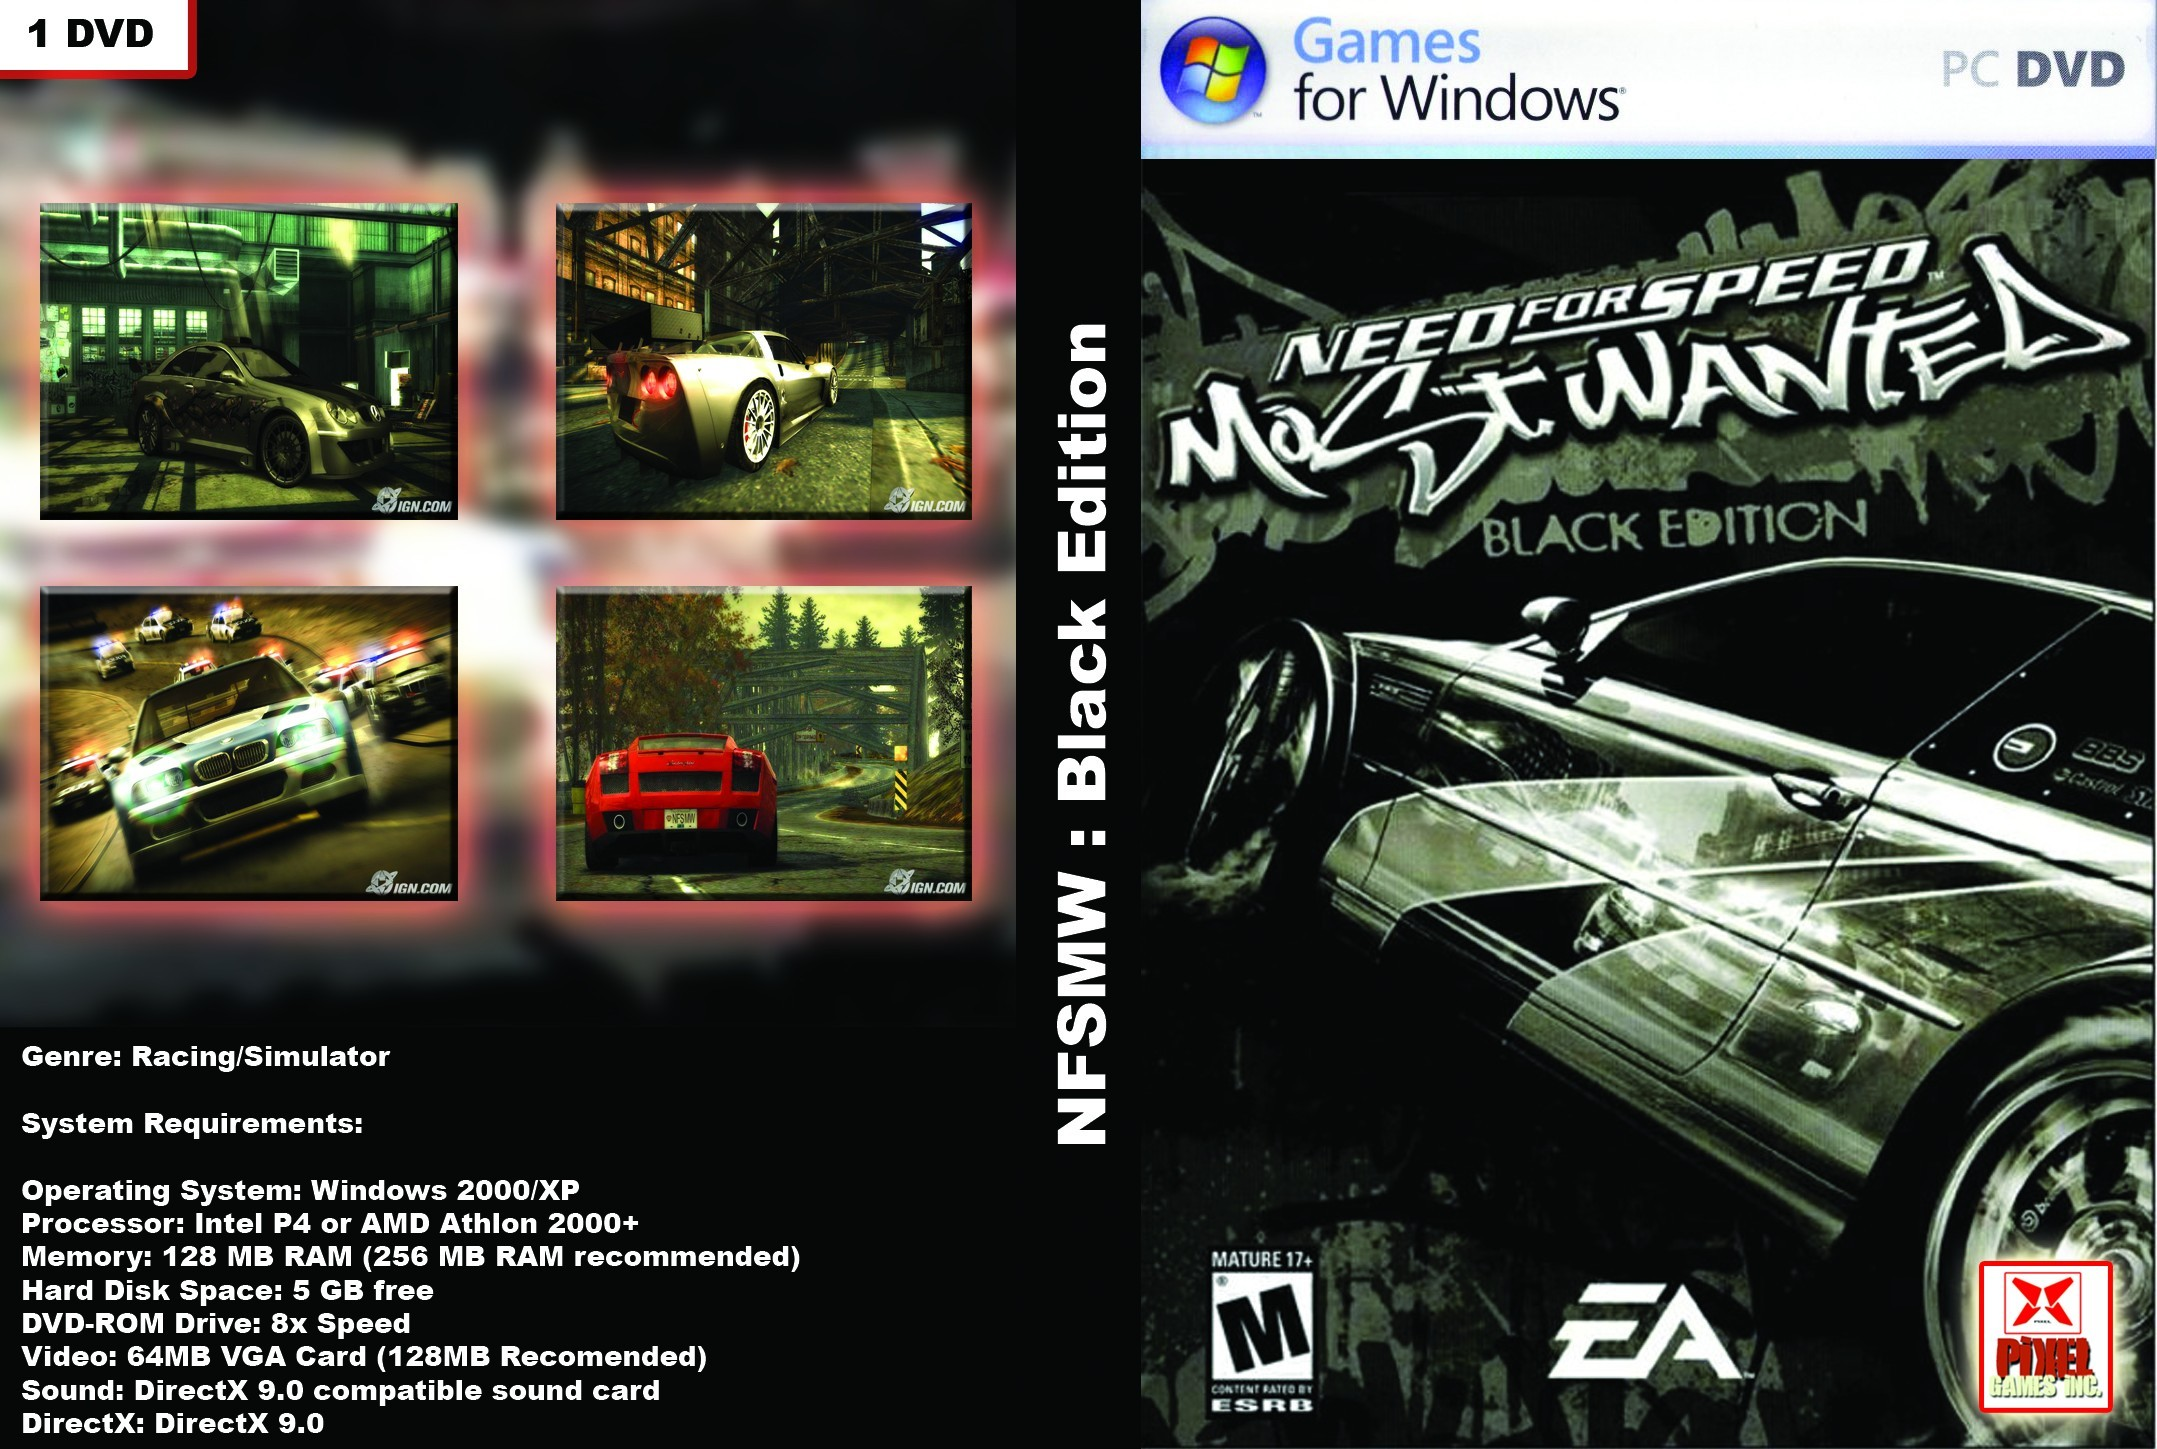 Mi subida nfs most wanted black edition hd pc mega Nfs most wanted para pc